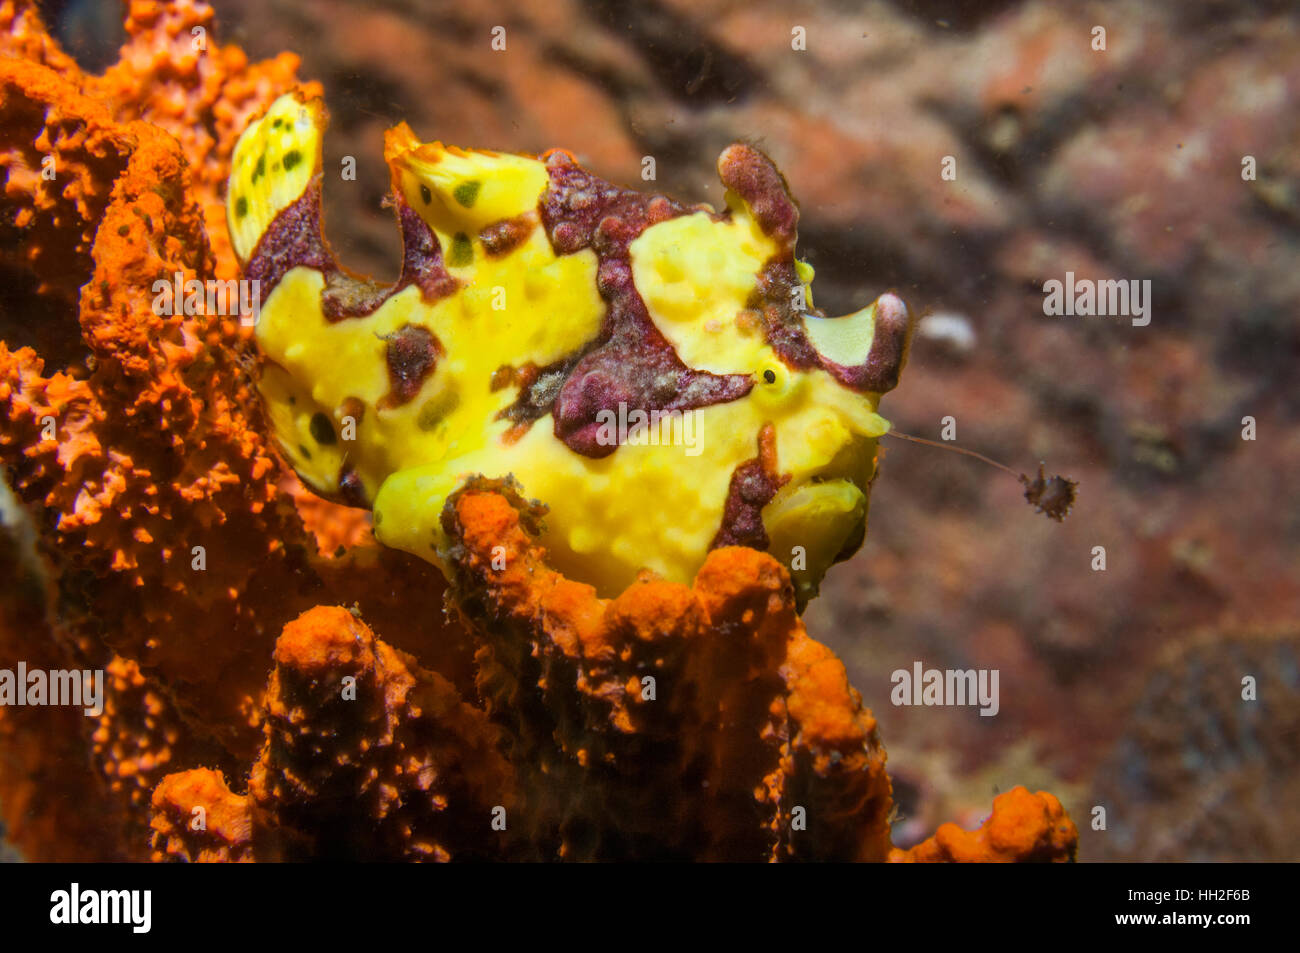 Yellow warty frogfish [Antennarius maculatus] with lure extended.  Lembeh, Sulawesi, Indonesia. - Stock Image